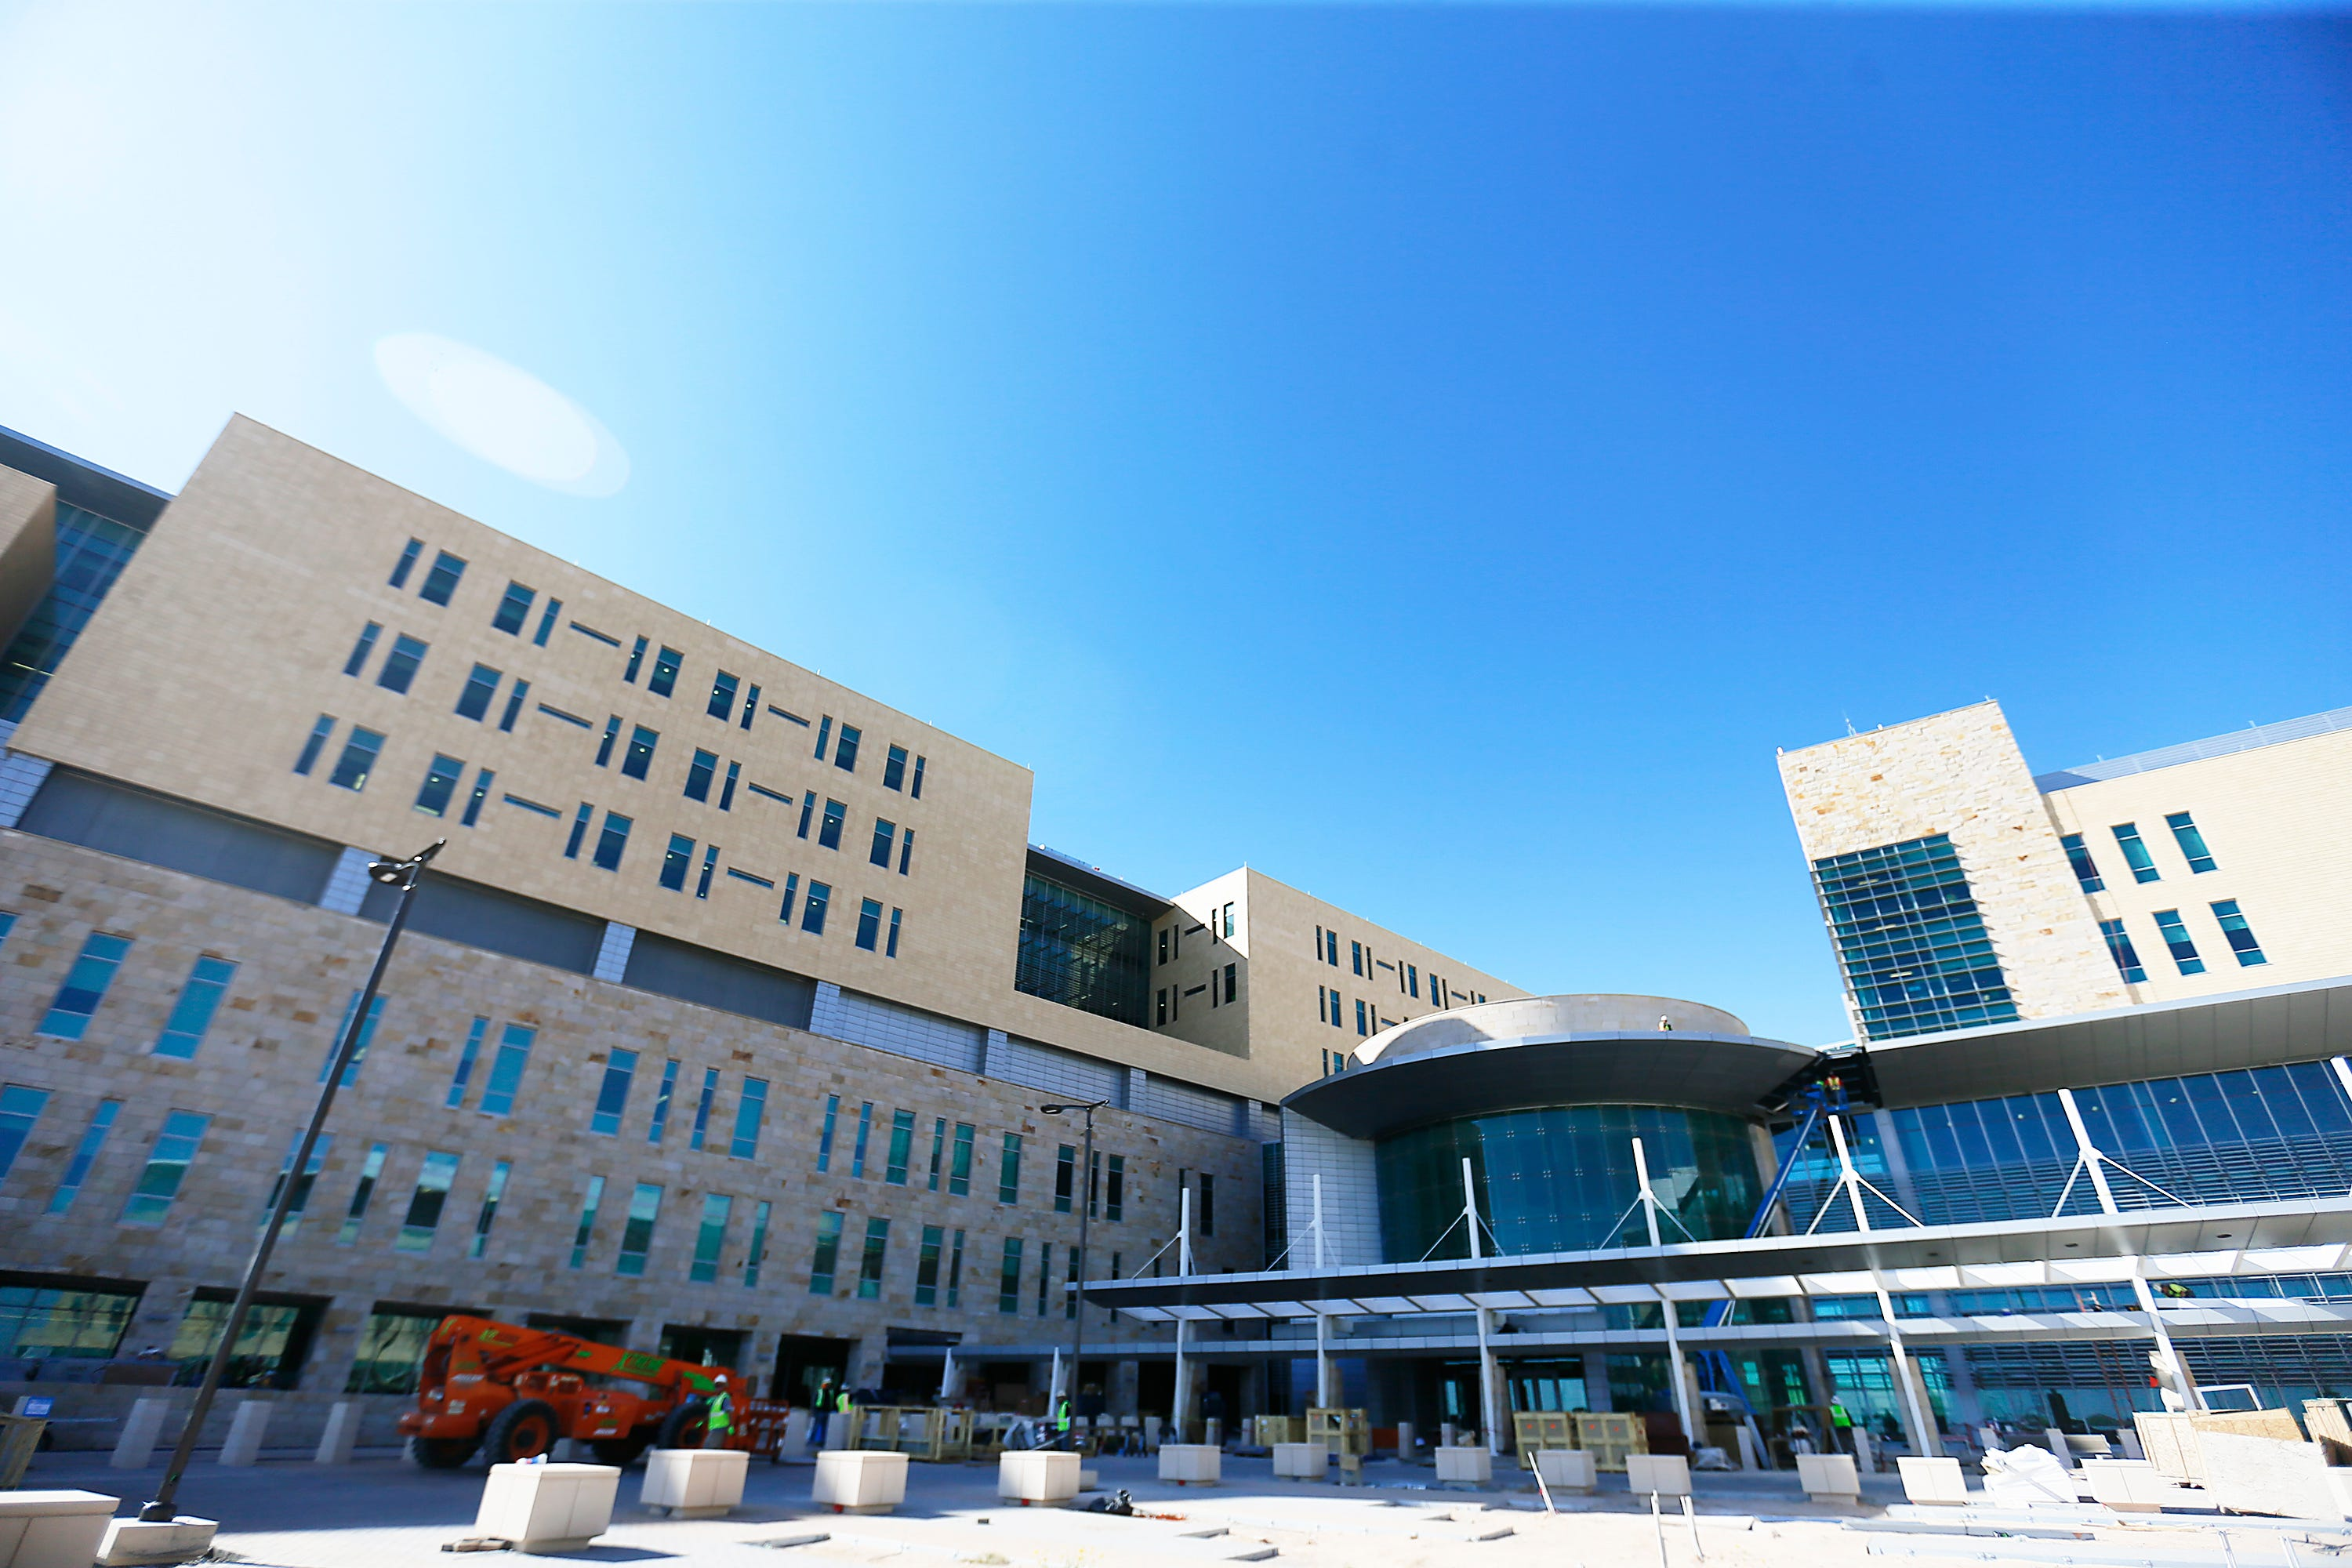 New Fort Bliss hospital cost rises to $1.4 billion as construction end nears